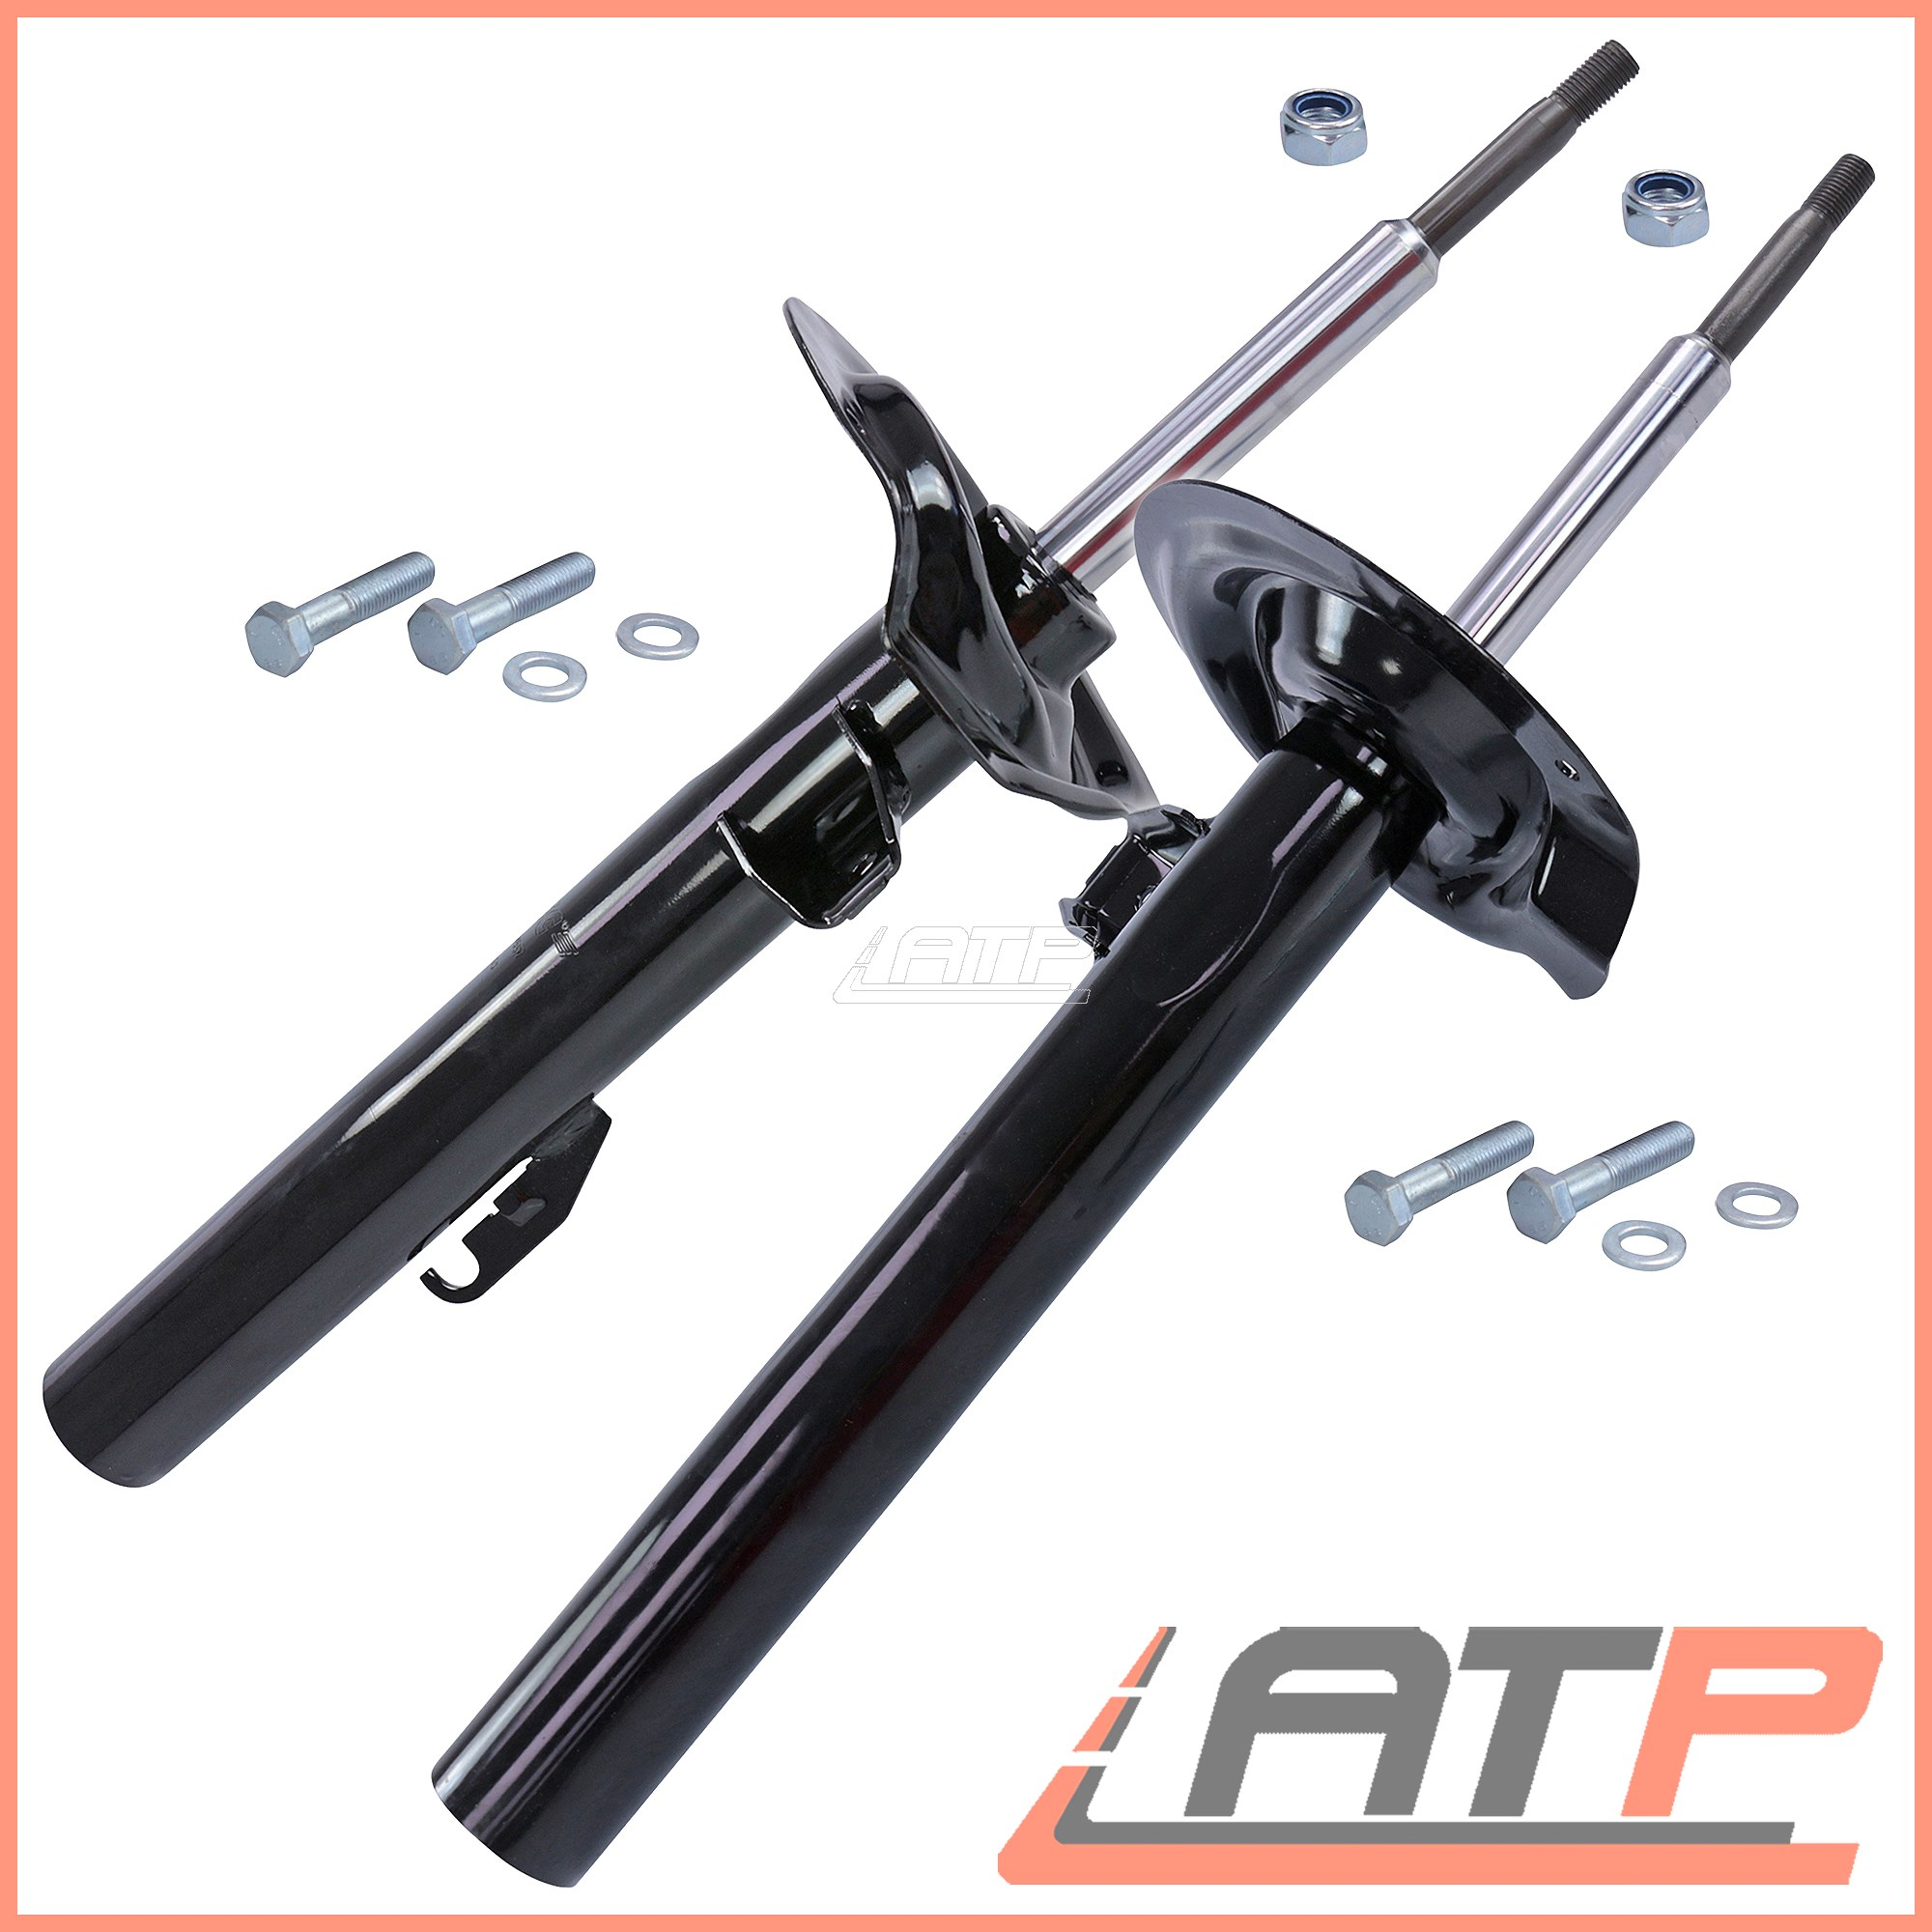 Shock Absorbers/Dampers 2 x SHOCK PROTECTION KIT BMW 7 SERIES E38 94-01 FRONT Suspension & Steering